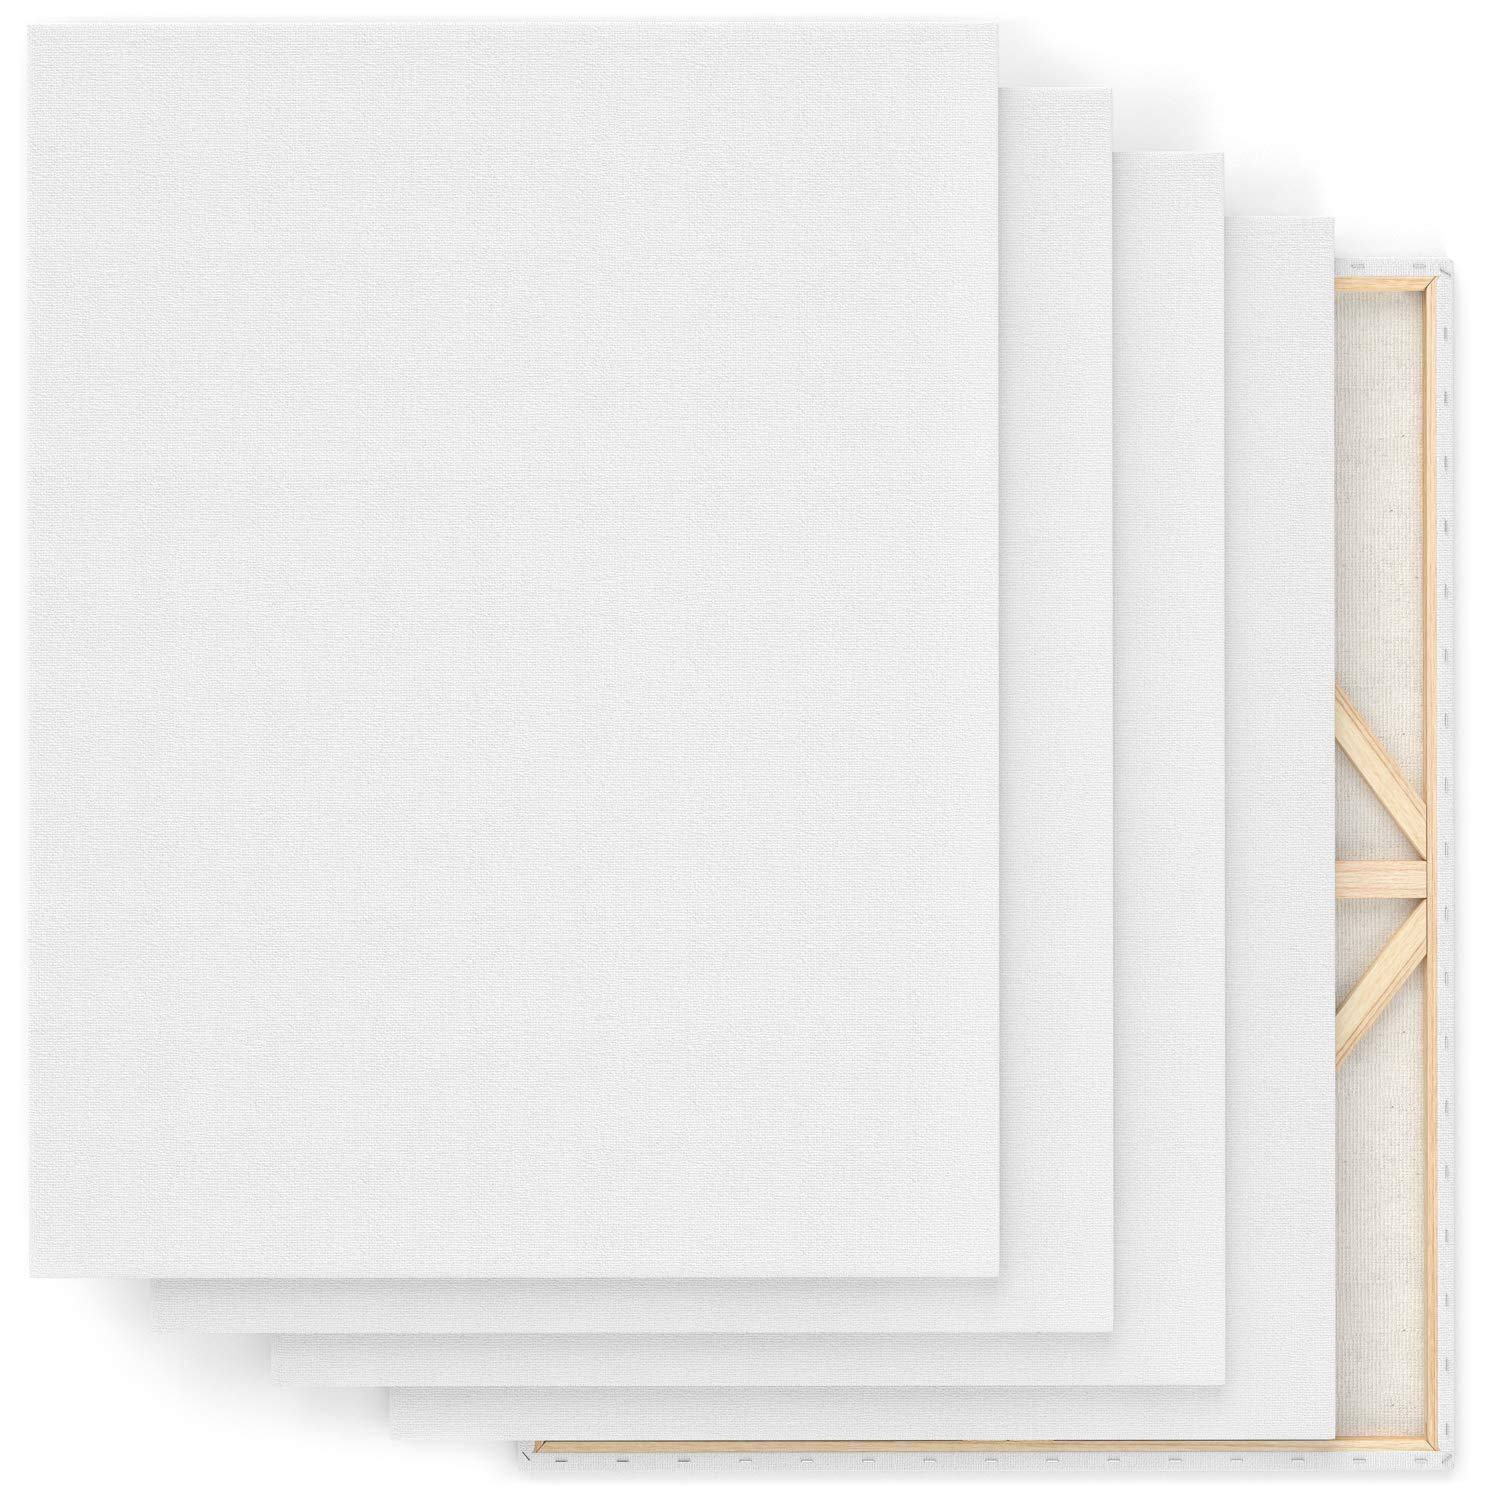 "Arteza 30x40"" Stretched White Blank Canvas, Bulk Pack of 5, Primed, 100% Cotton for Painting, Acrylic Pouring, Oil Paint & Wet Art Media, Canvases for Professional Artist, Hobby Painters & Beginner by ARTEZA (Image #5)"